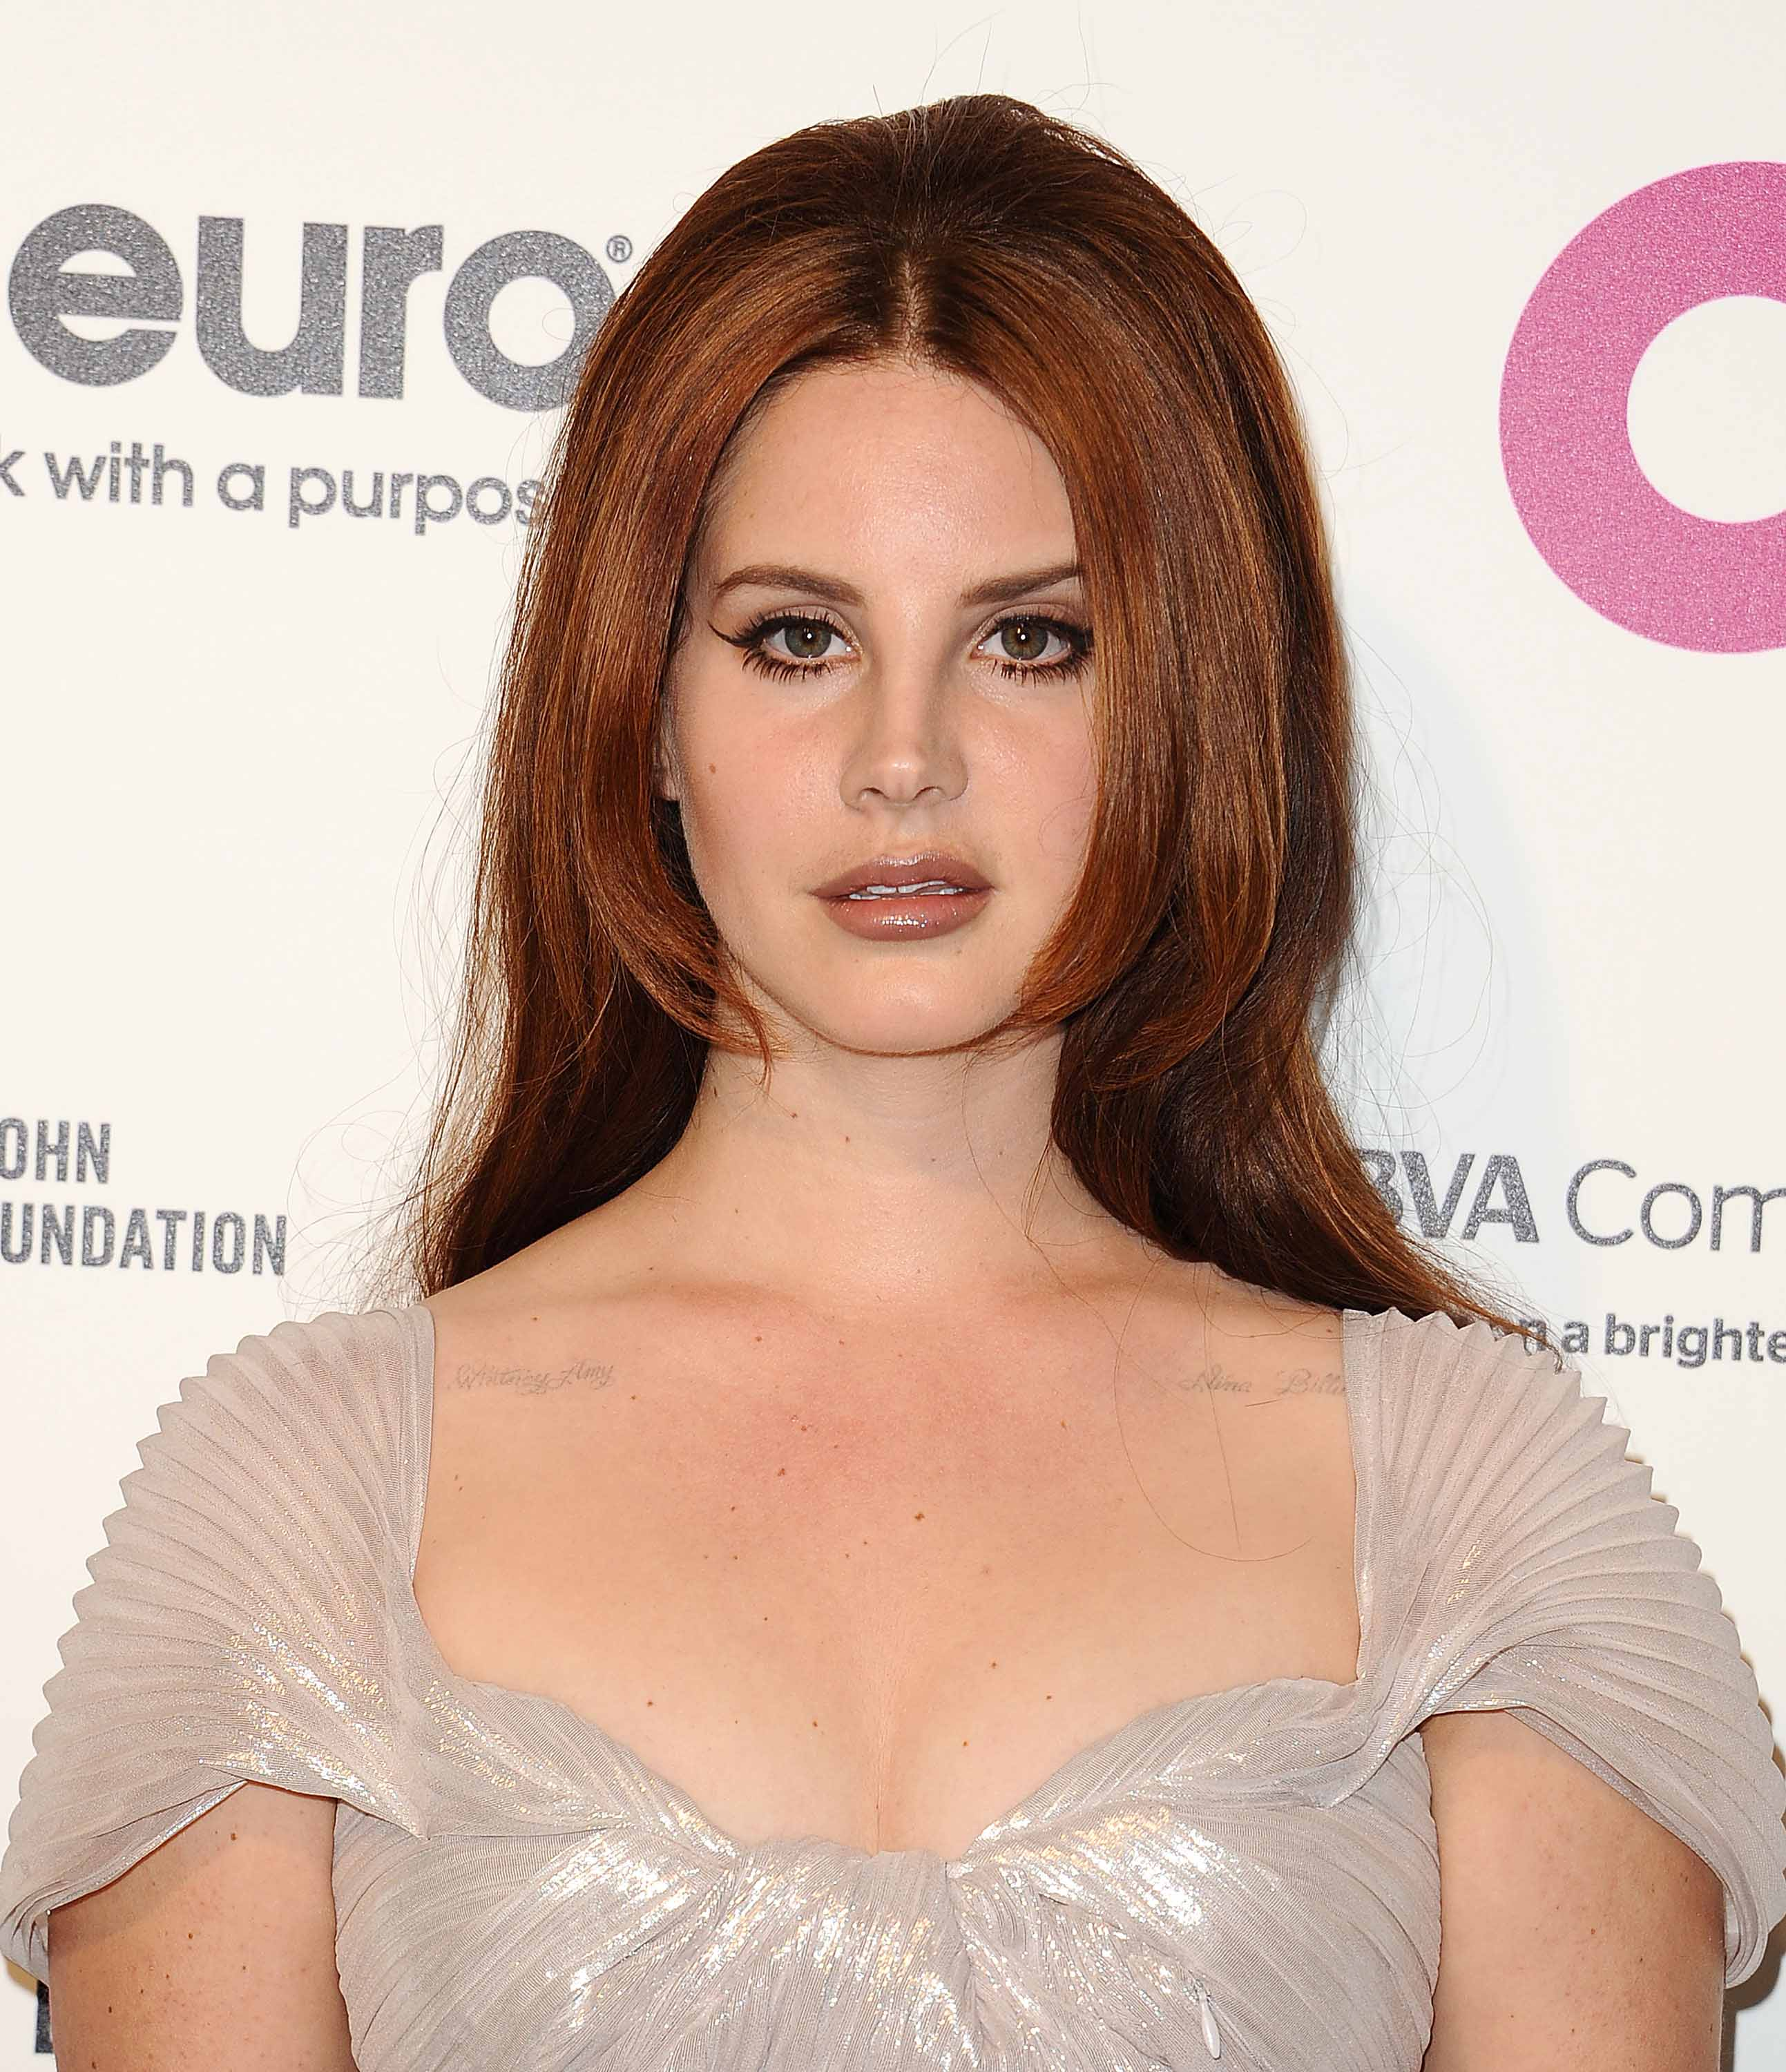 Famous redheads: All Things Hair - IMAGE - Lana Del Rey long red hair